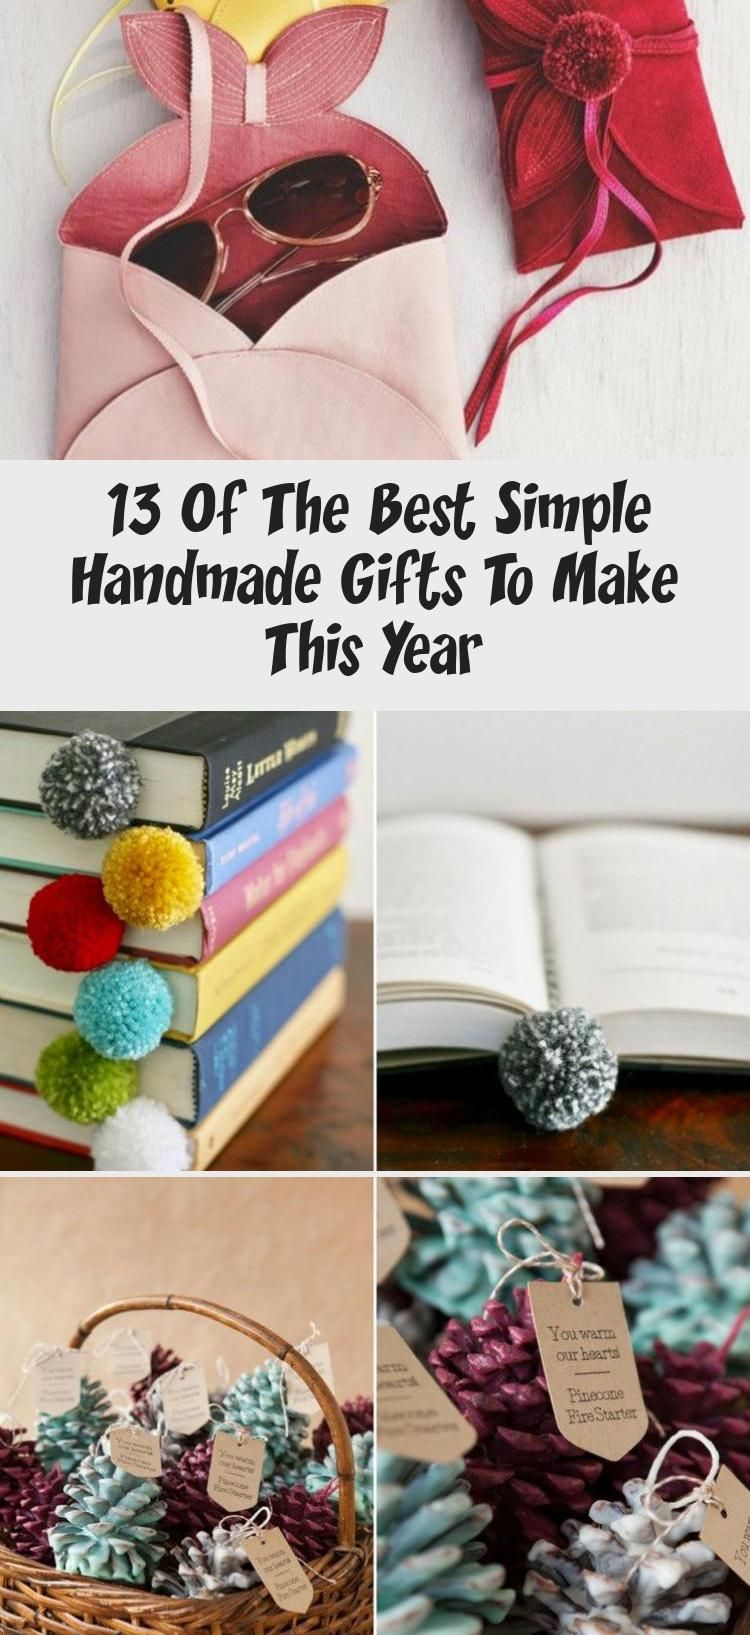 13 Of The Best Simple Handmade Gifts To Make This Year in